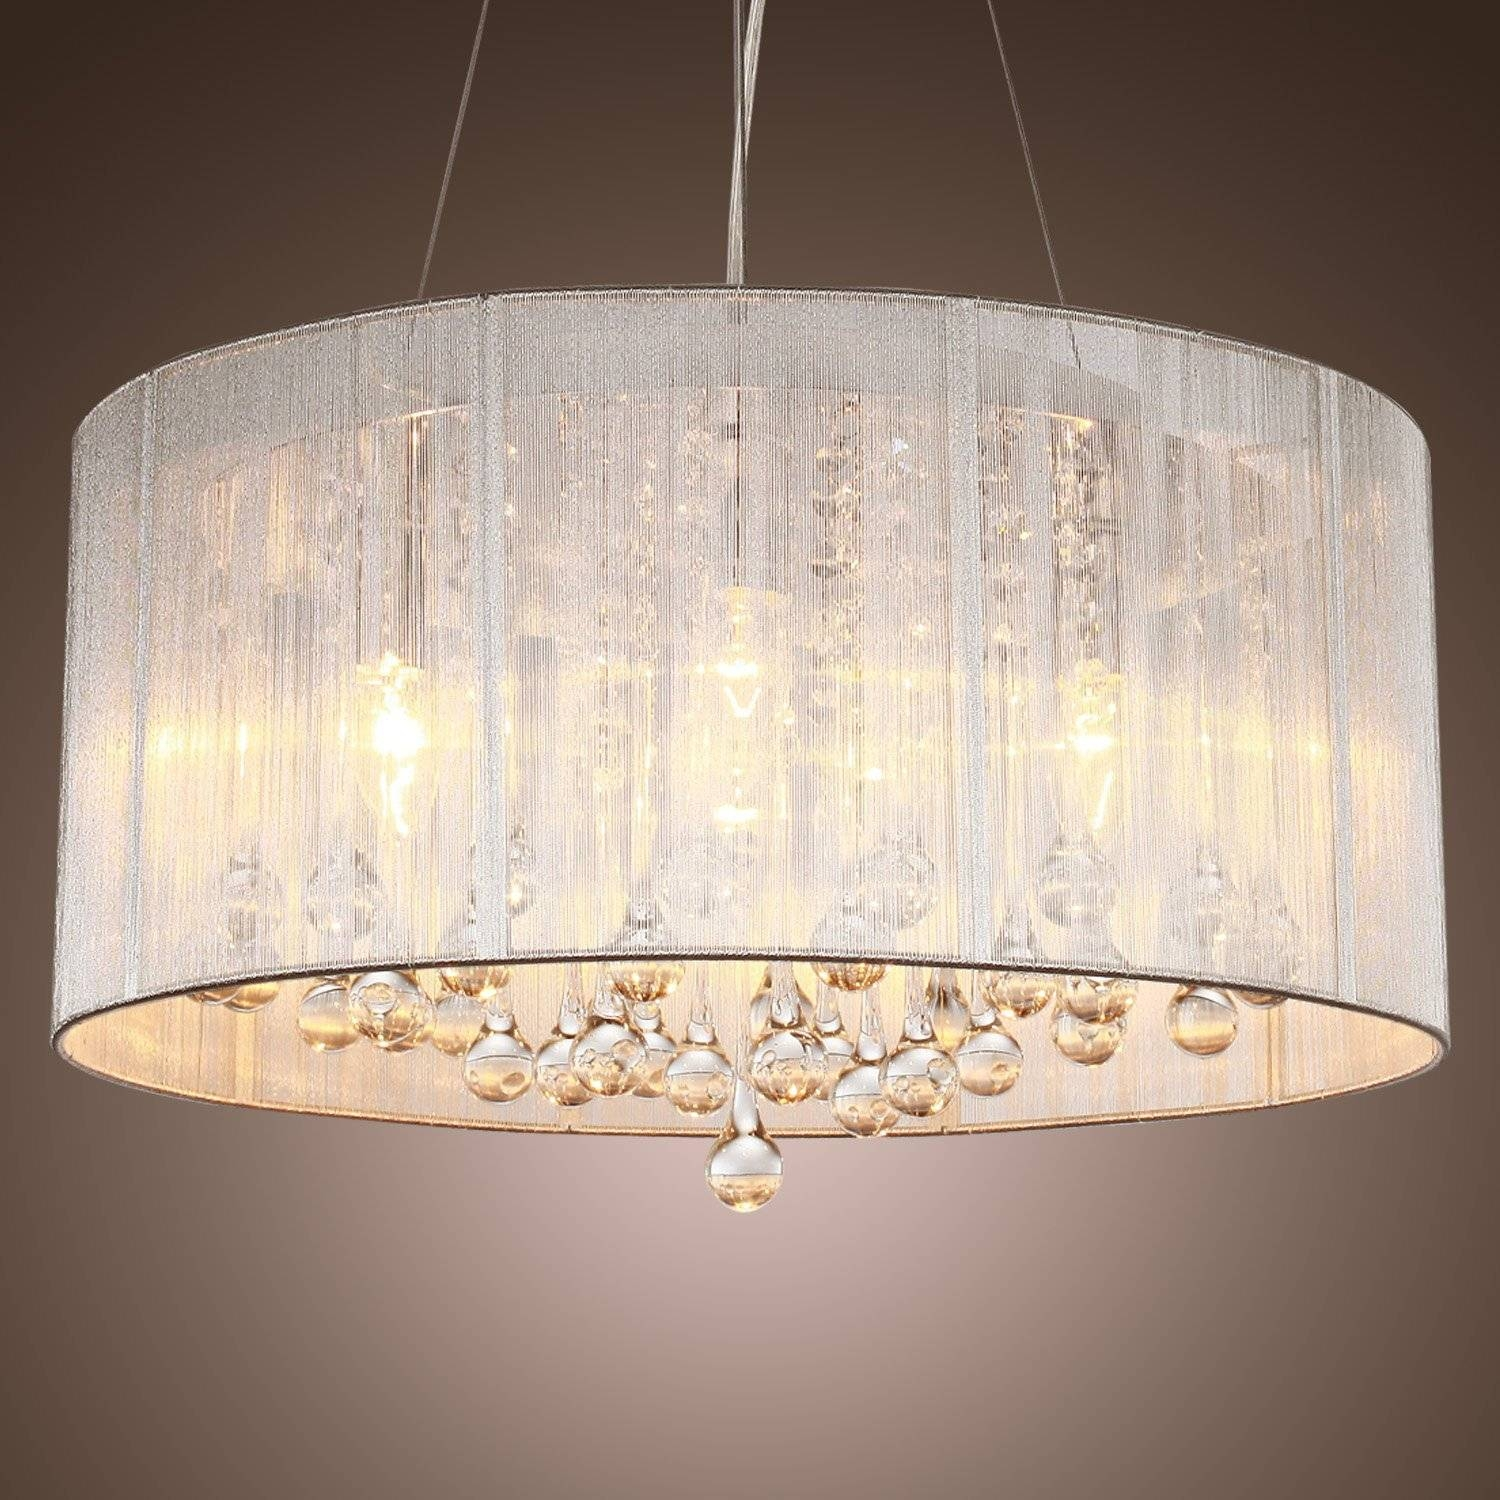 The Capiz Shell Chandelier And Its Geometric Pattern Lamp For intended for Shell Lights Shades (Image 14 of 15)